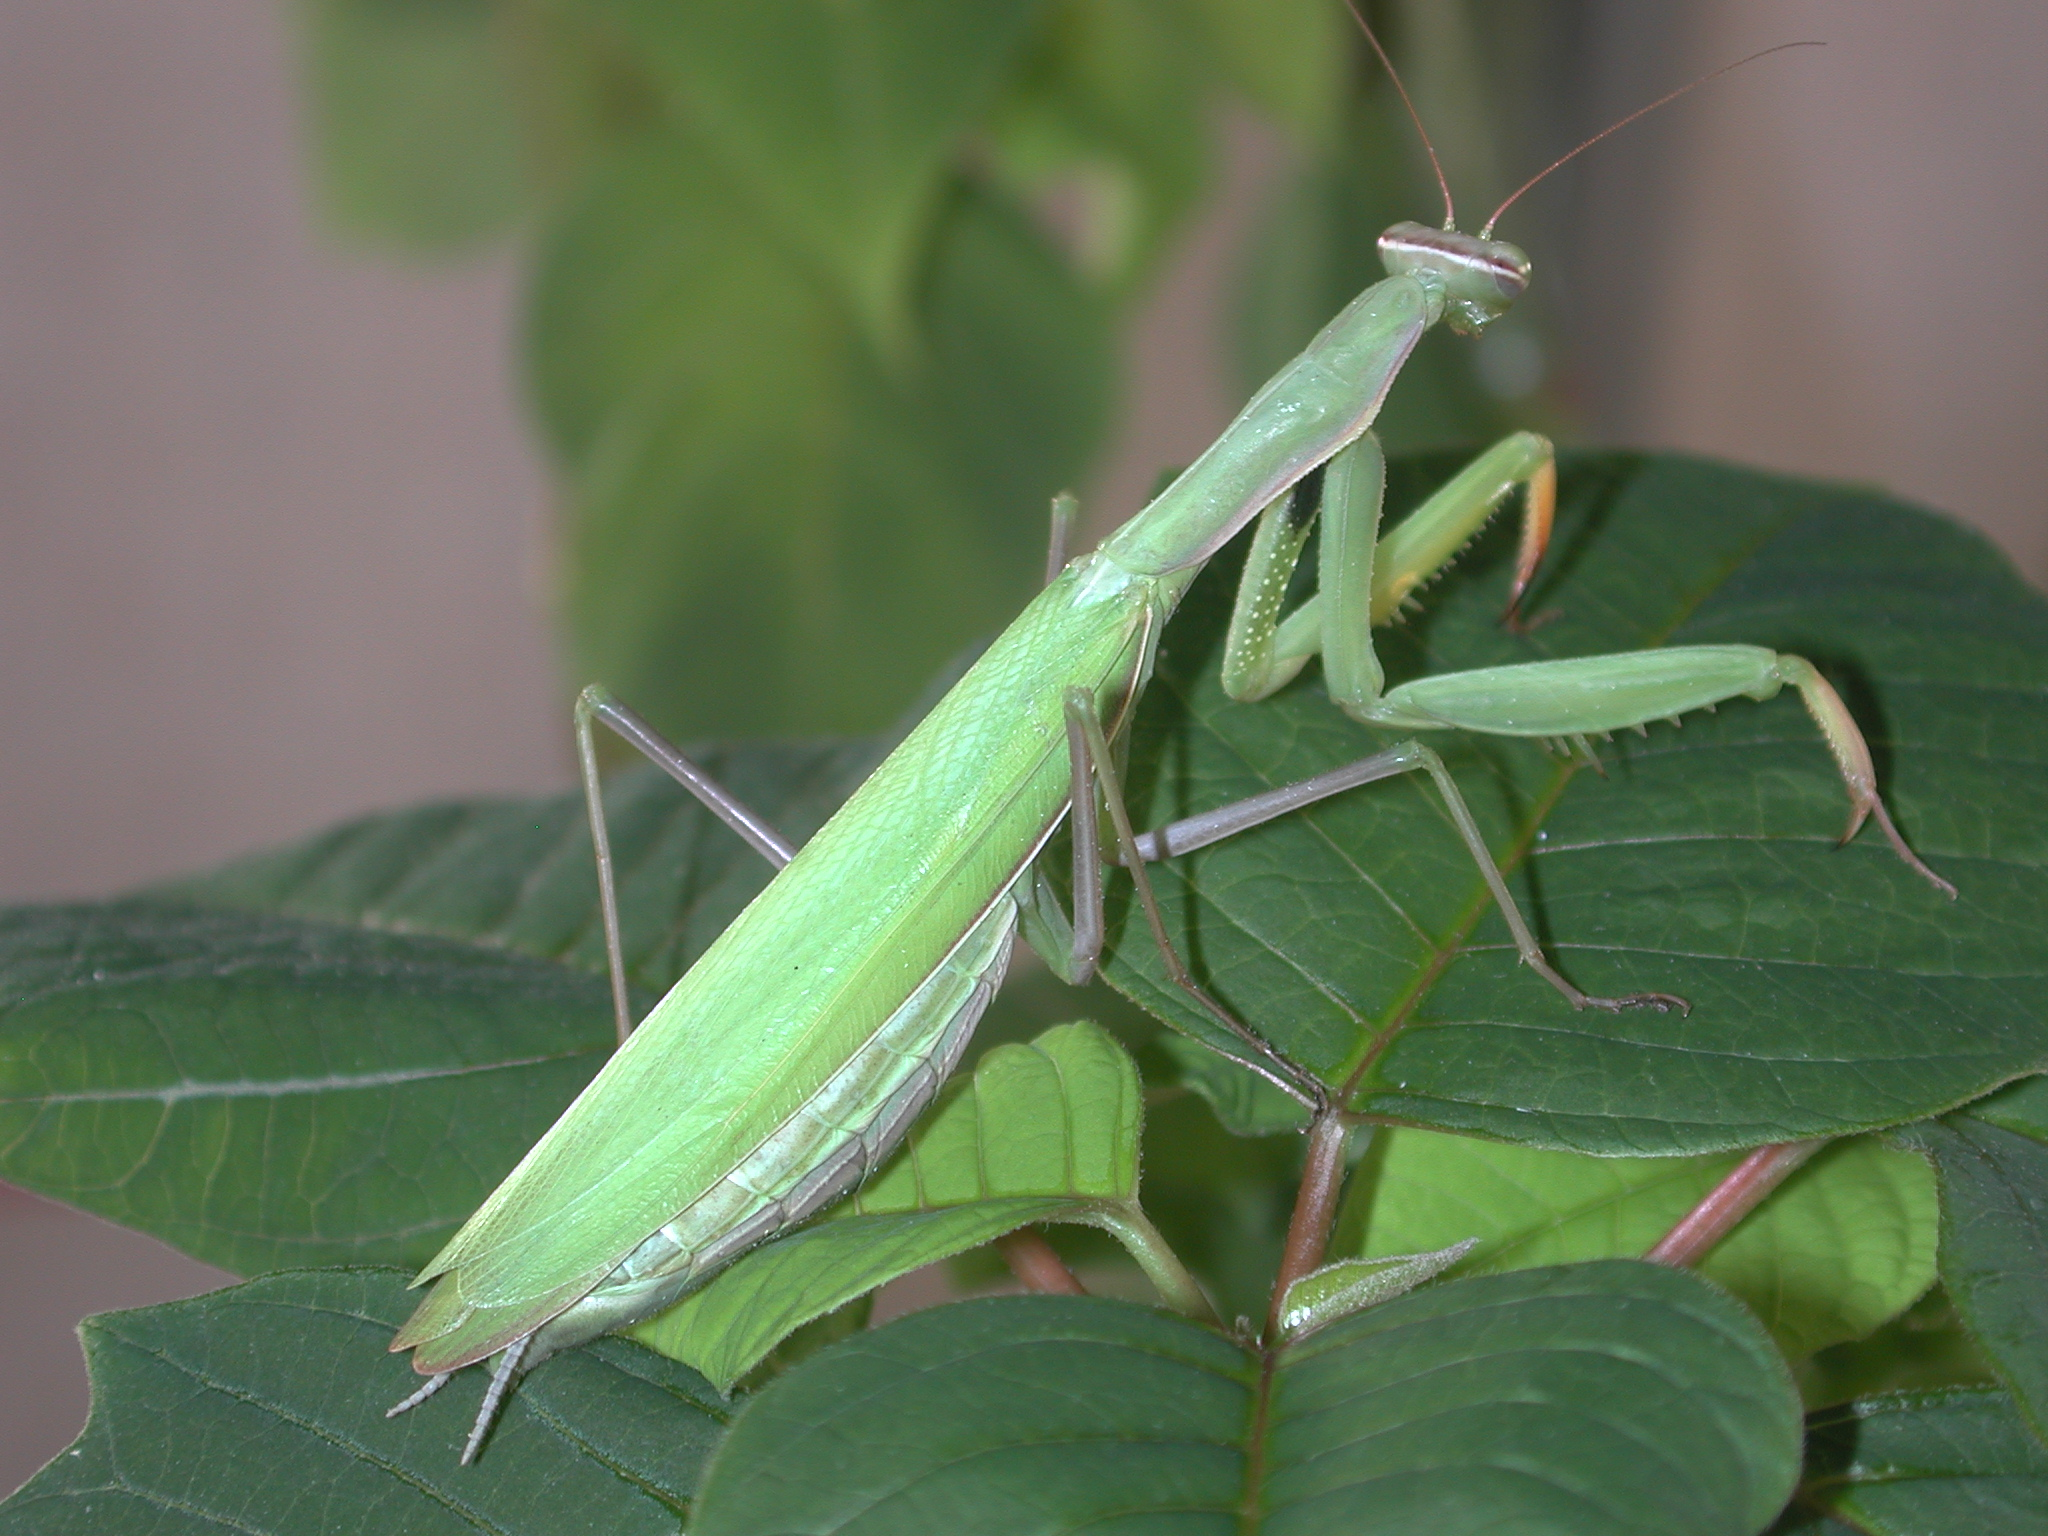 Praying mantis = Mantis religiosa